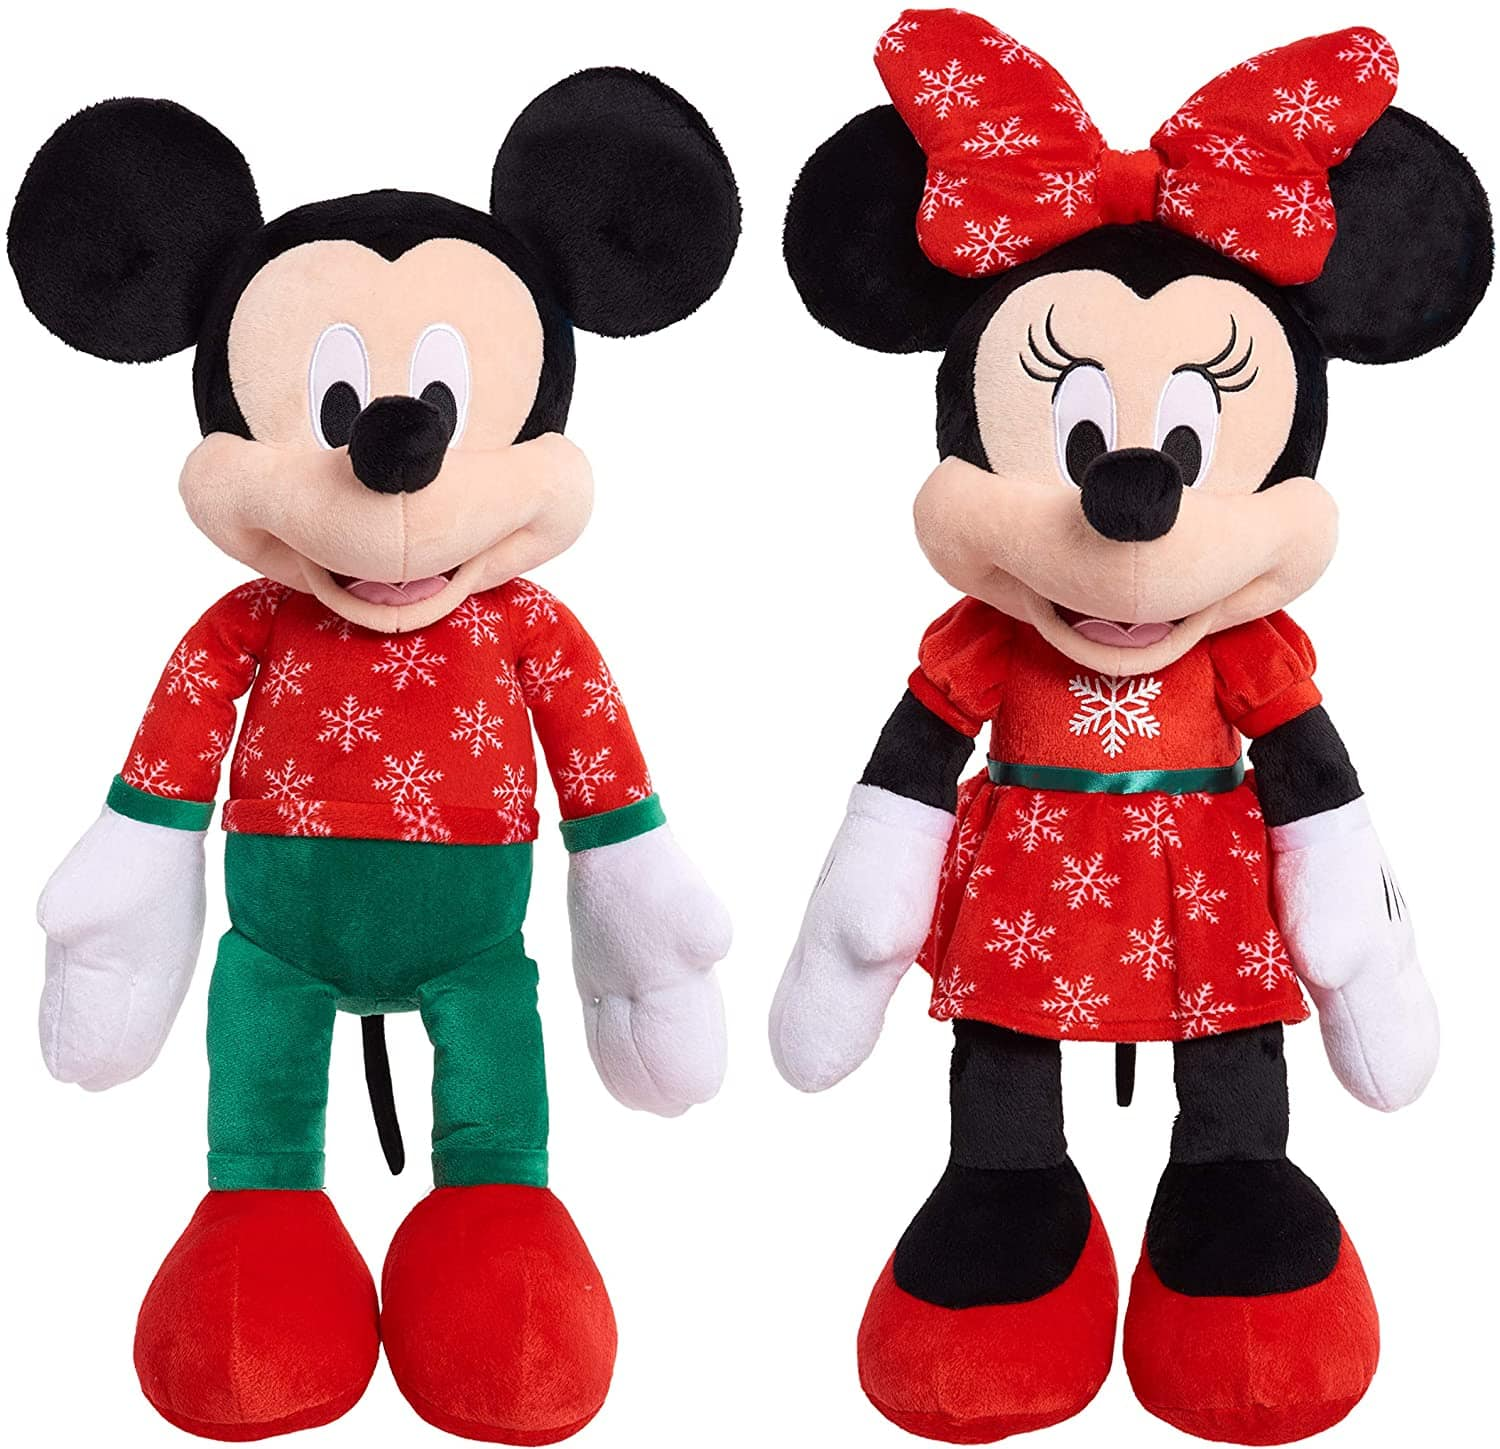 Disney Mickey or Minnie Large 2020 Holiday Plush